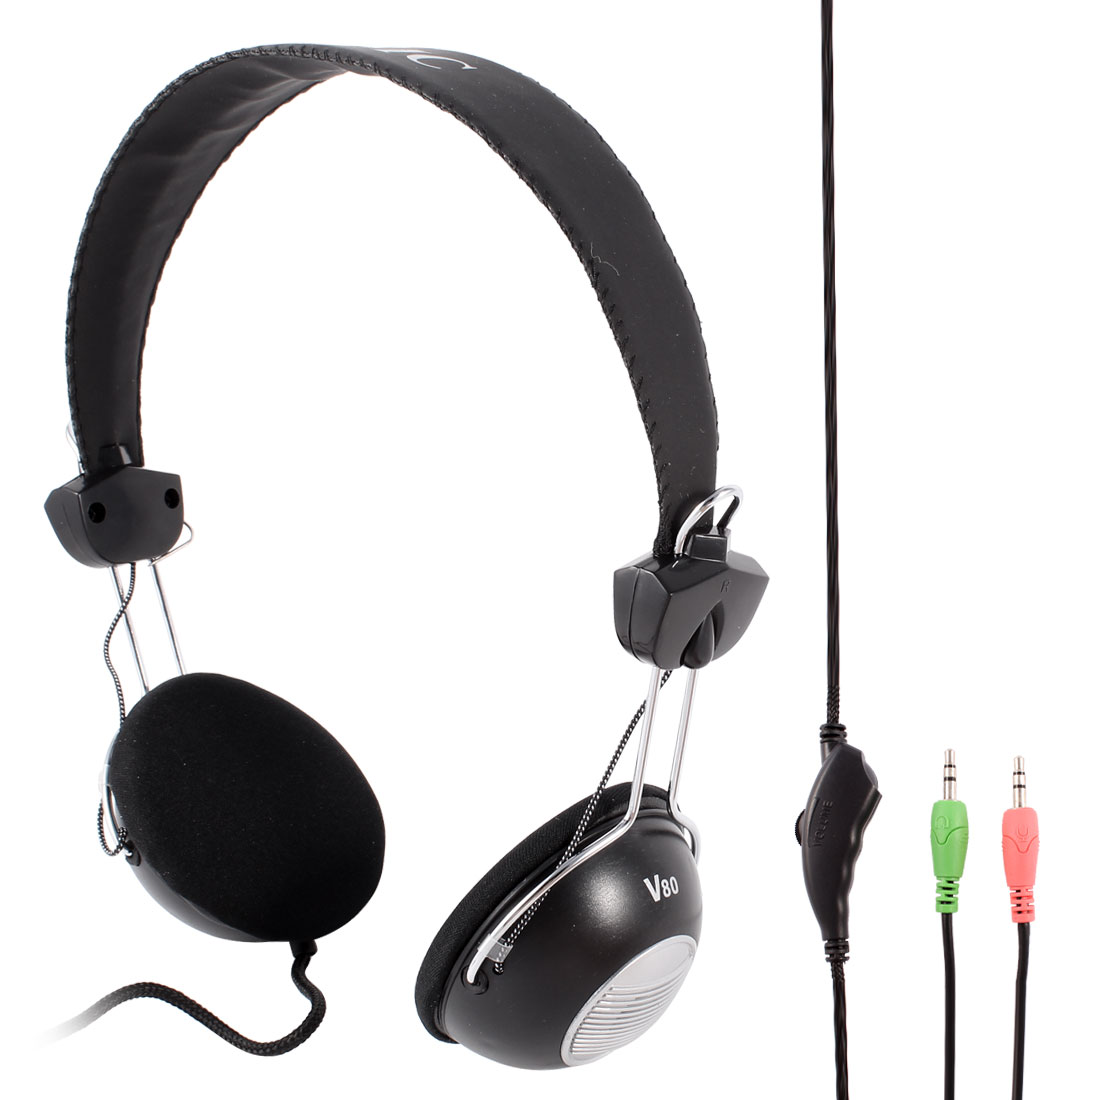 Adjustable Headband PC Computer Headphone Headset 3.5mm Plug w Mircophone